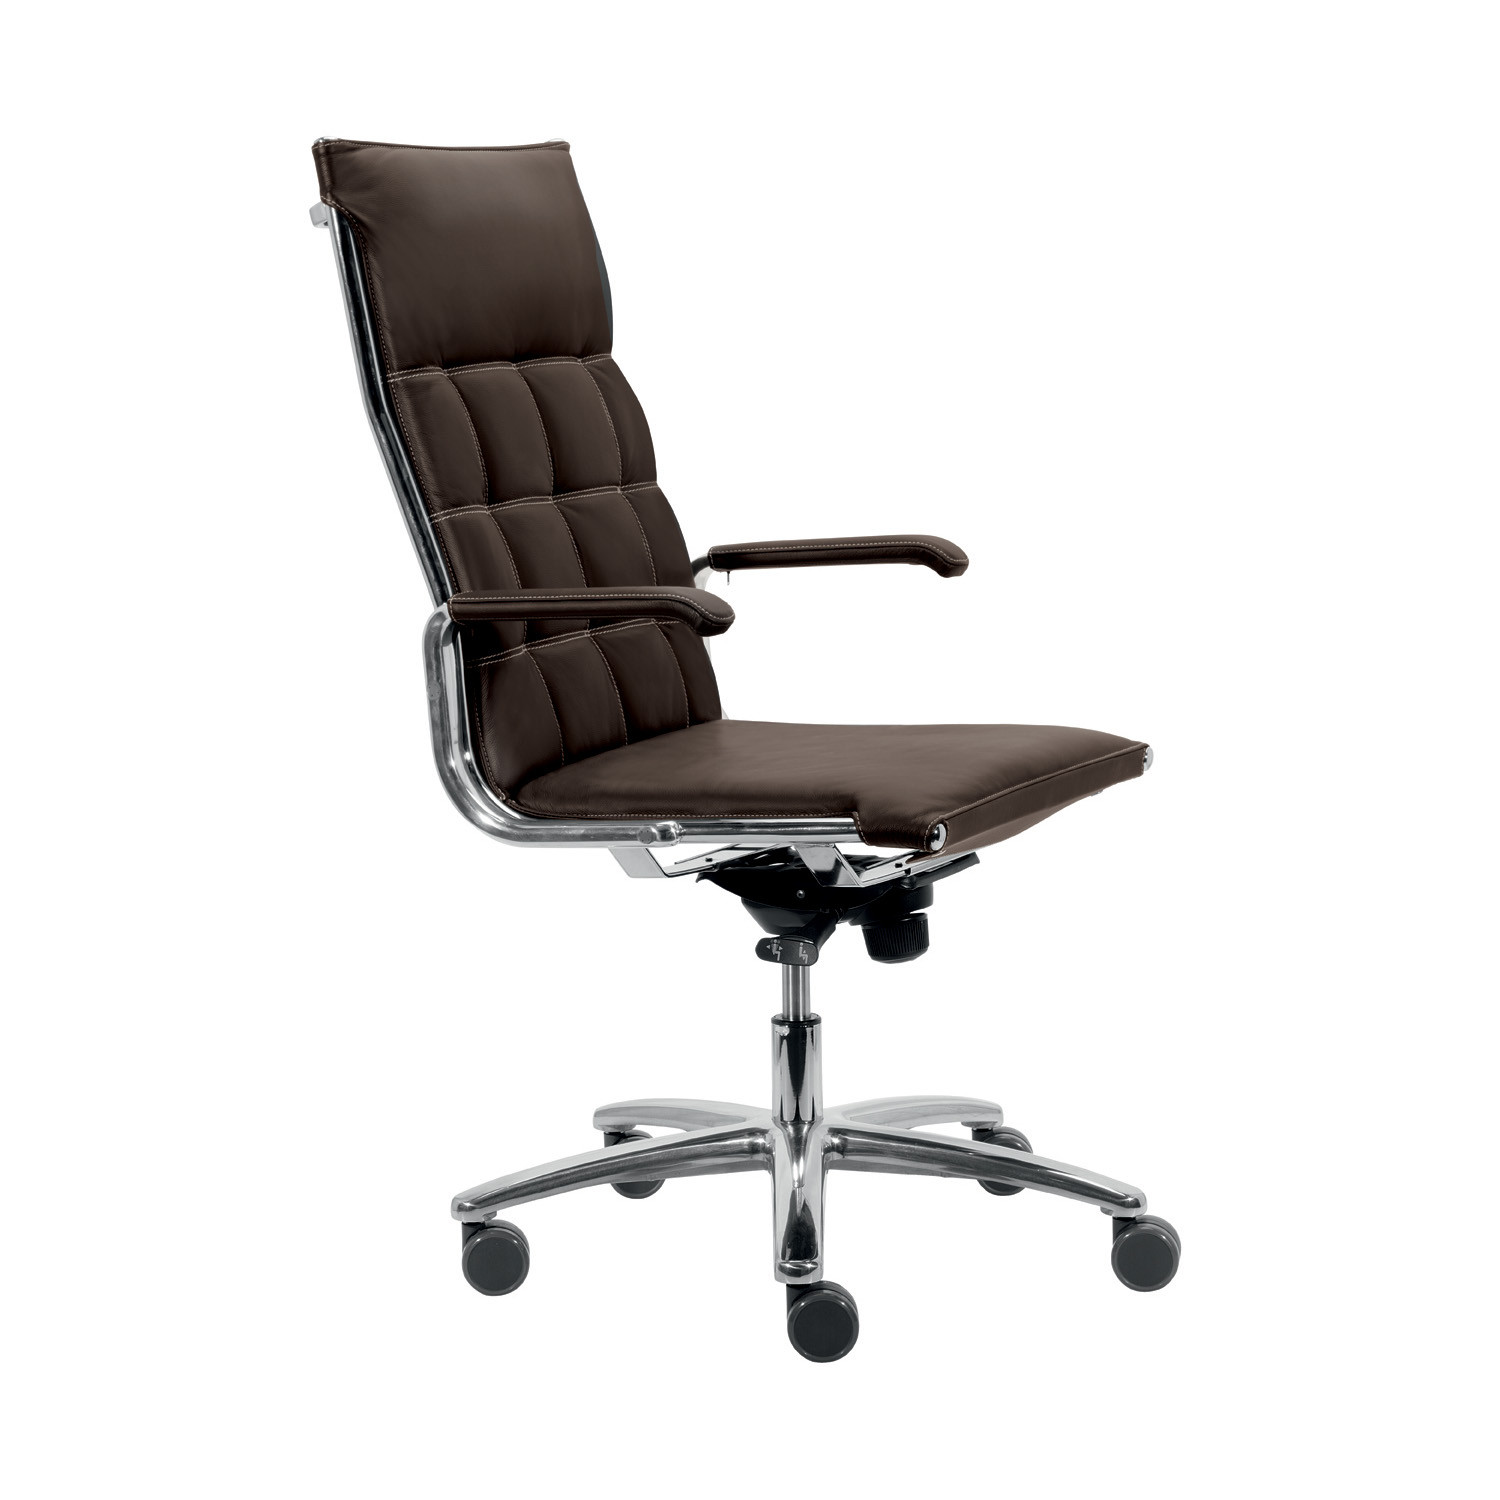 Taylord High Backrest Executive Office Chairs